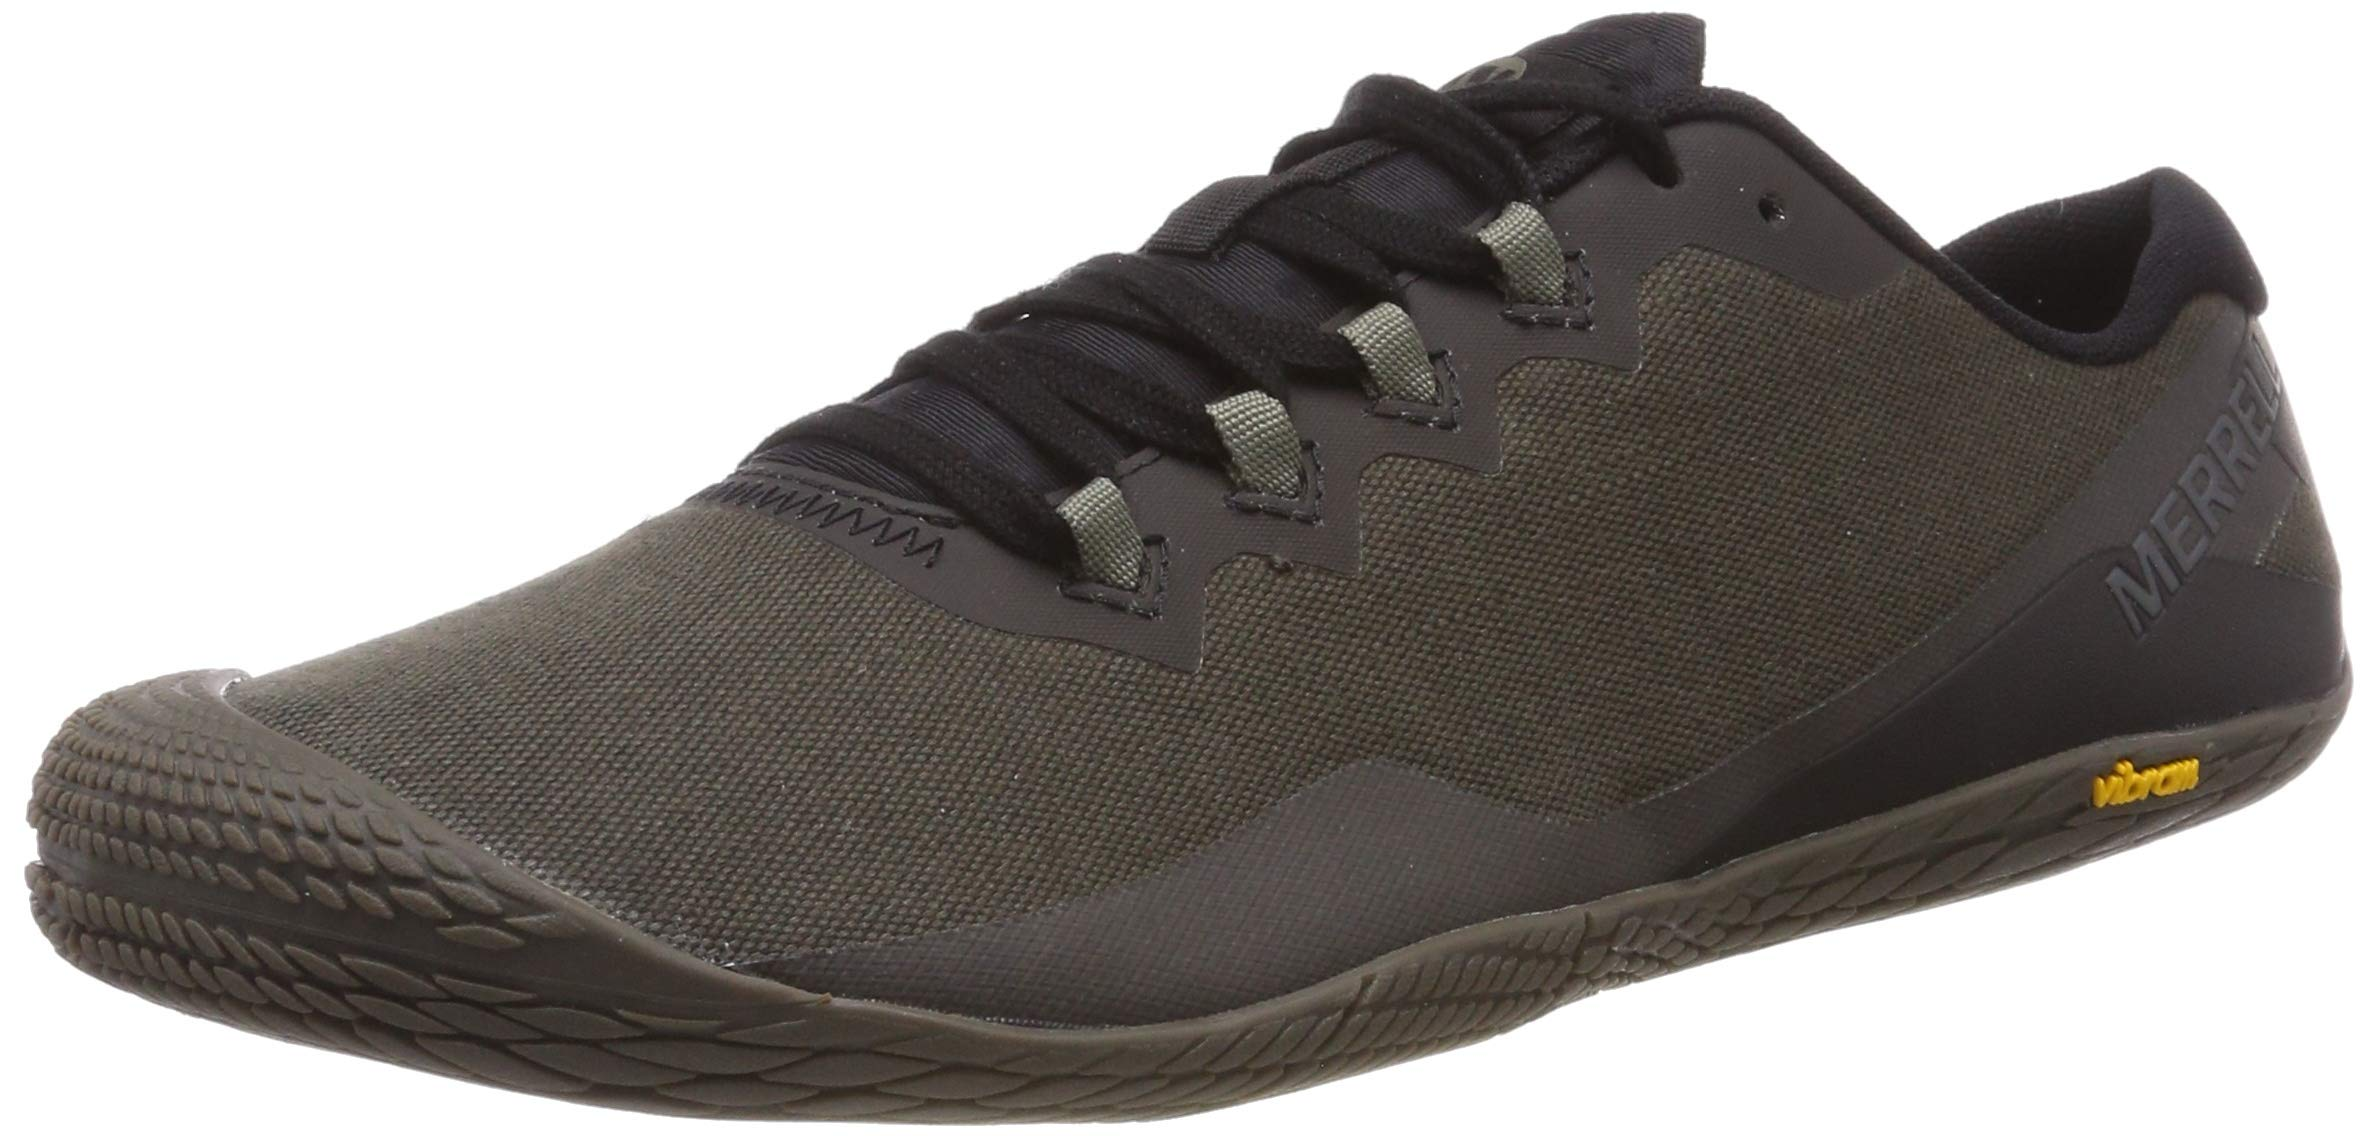 Merrell Men's Vapor Glove 3 Cotton Dusty Olive 10.5 M US by Merrell